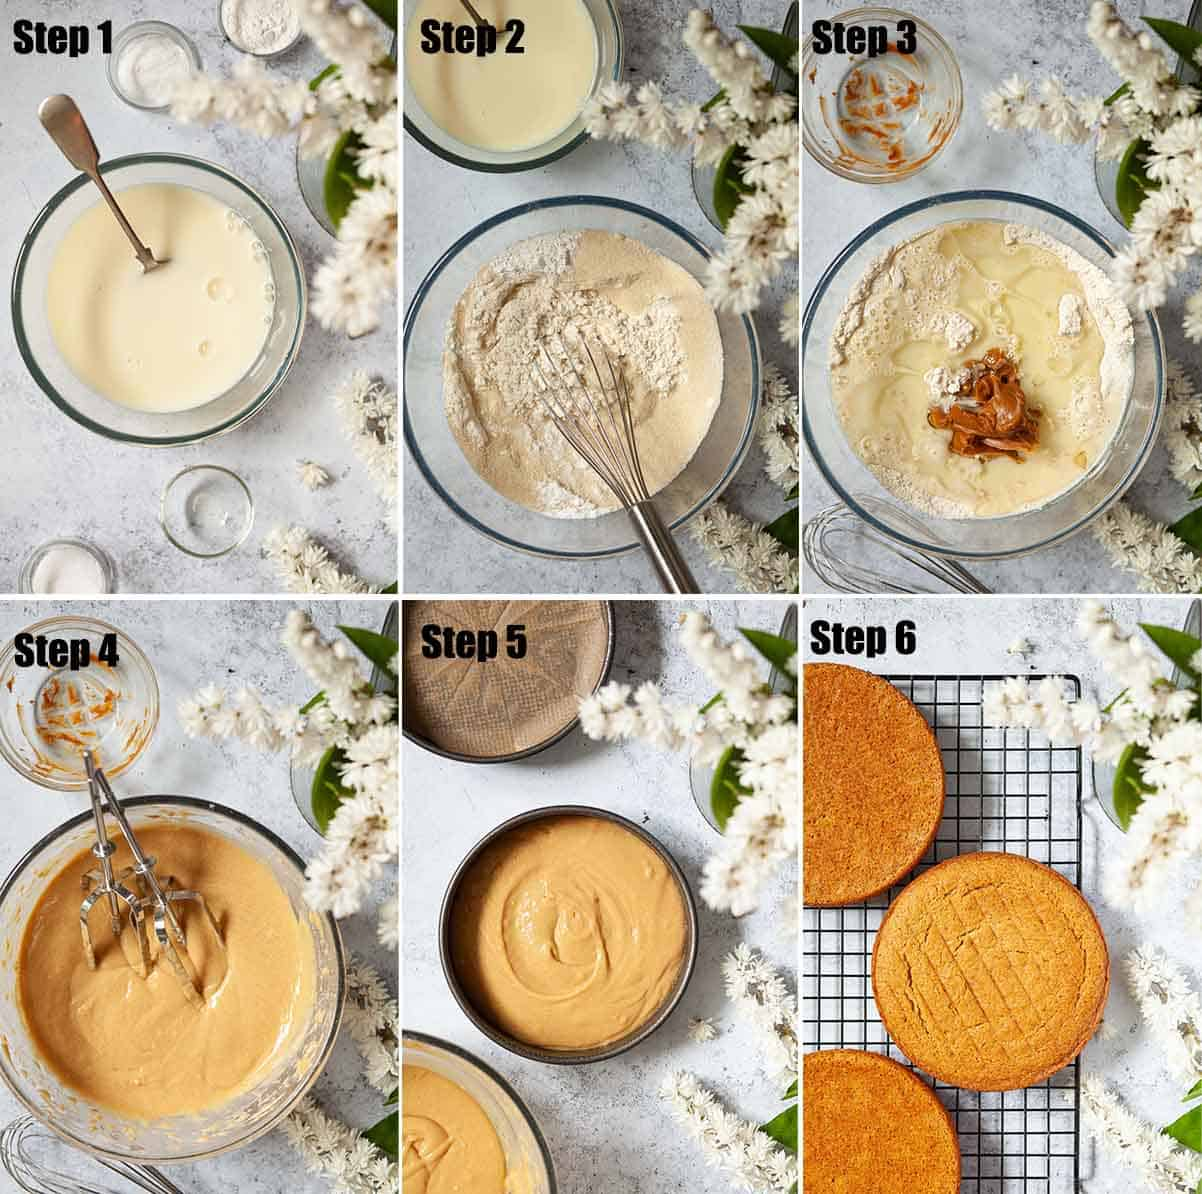 Collage of images showing cookie butter sponge cake being made